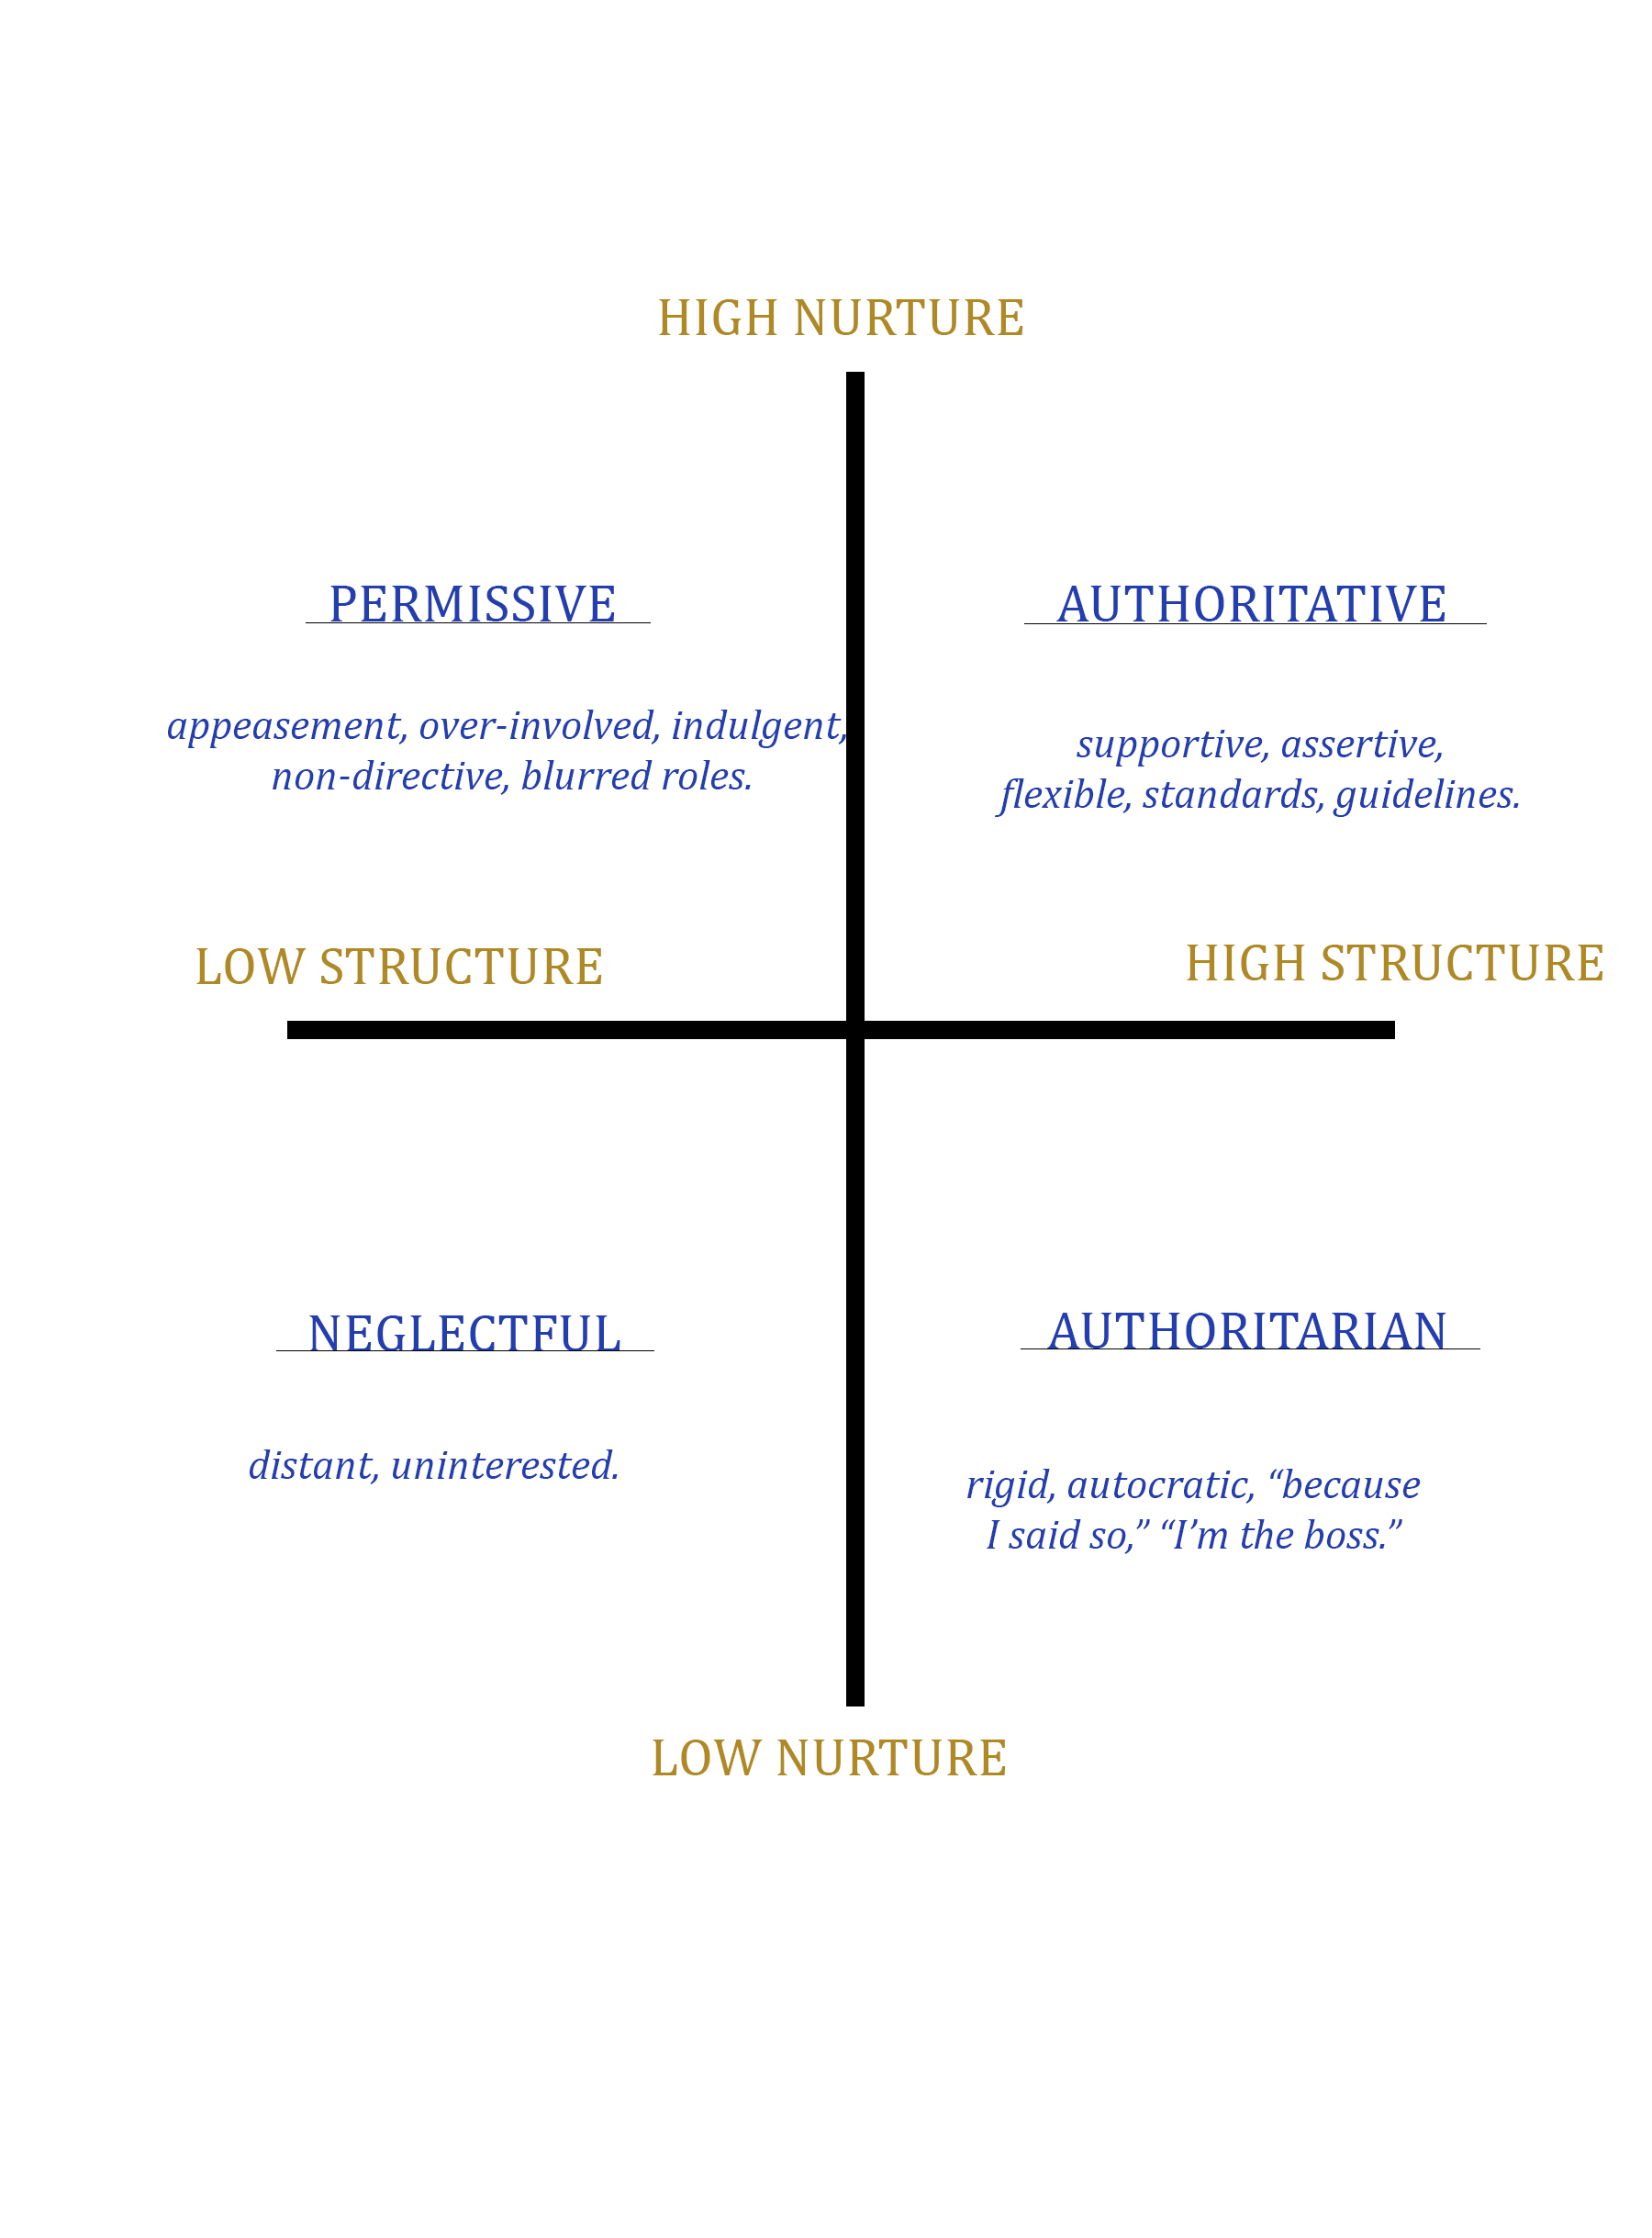 examples of parenting styles This lesson discusses the parenting theory developed by psychologist diana baumrind, including her three main parenting styles at the end of the.